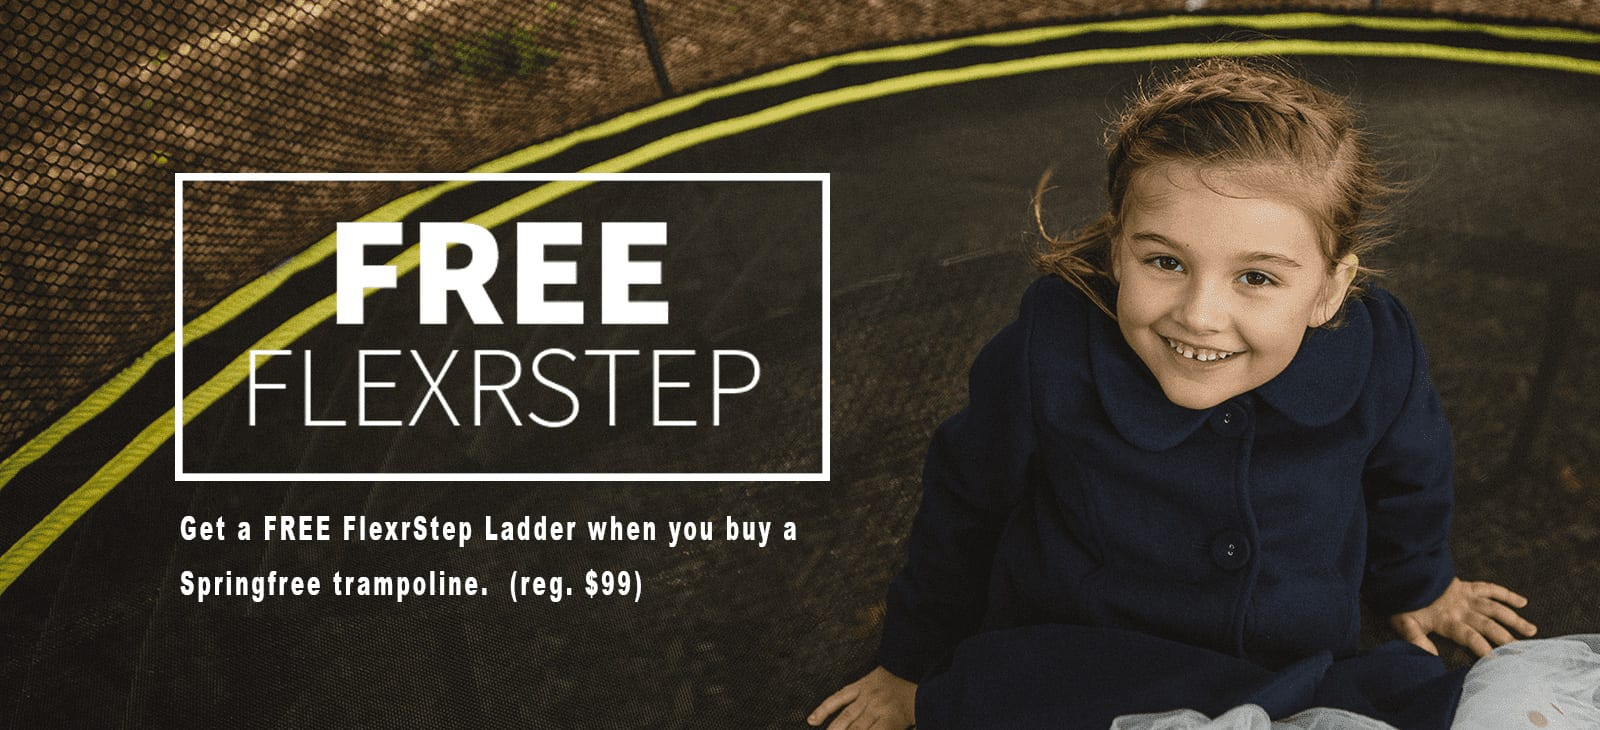 Free Flexrstep with Spring Free purchase